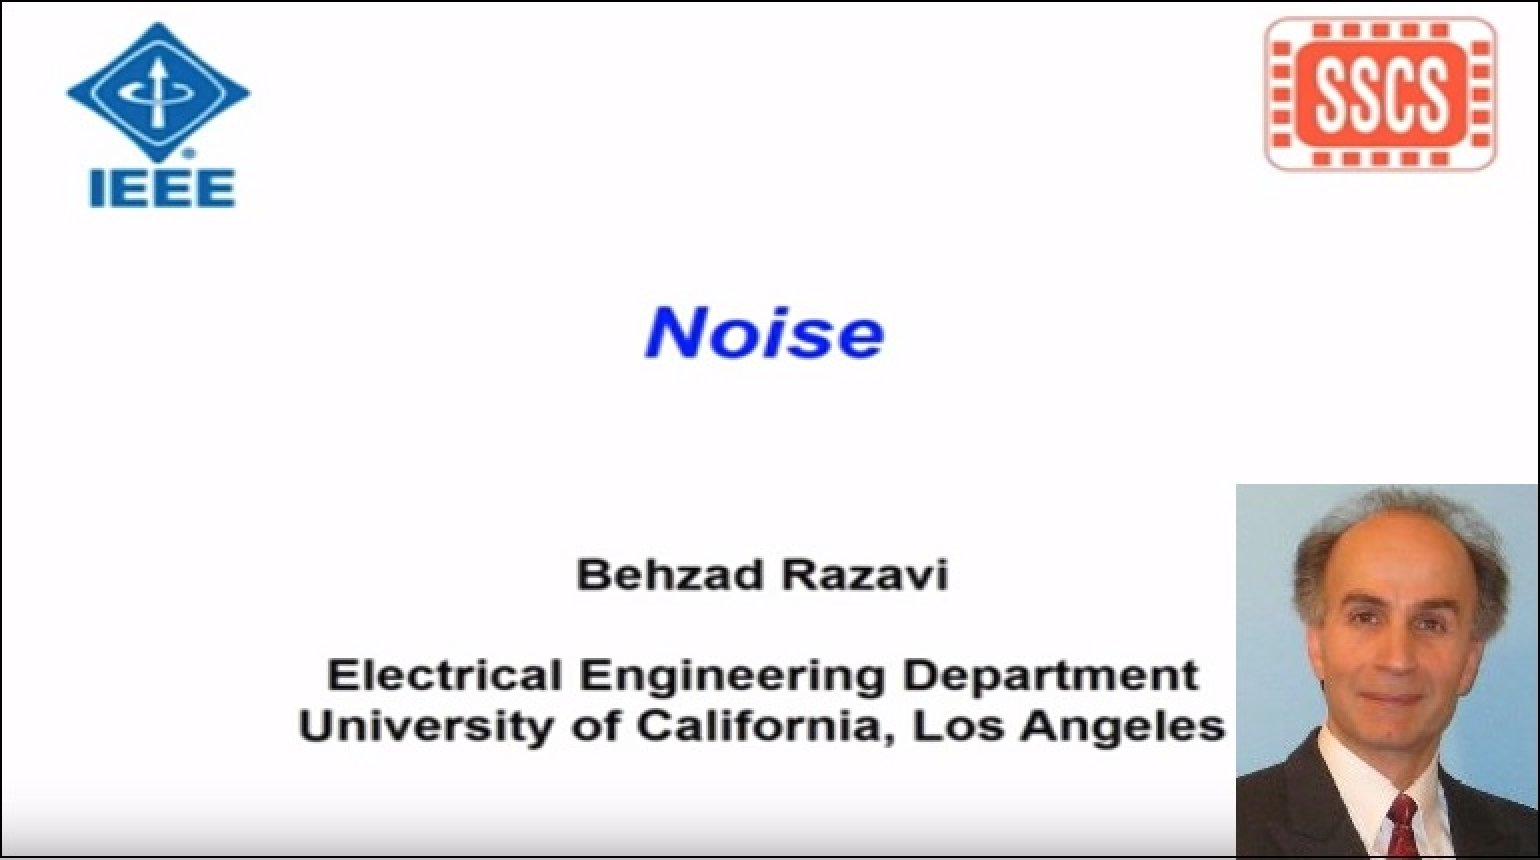 Noise: Lecture 3 - Circuit Noise Analysis and Representation Video